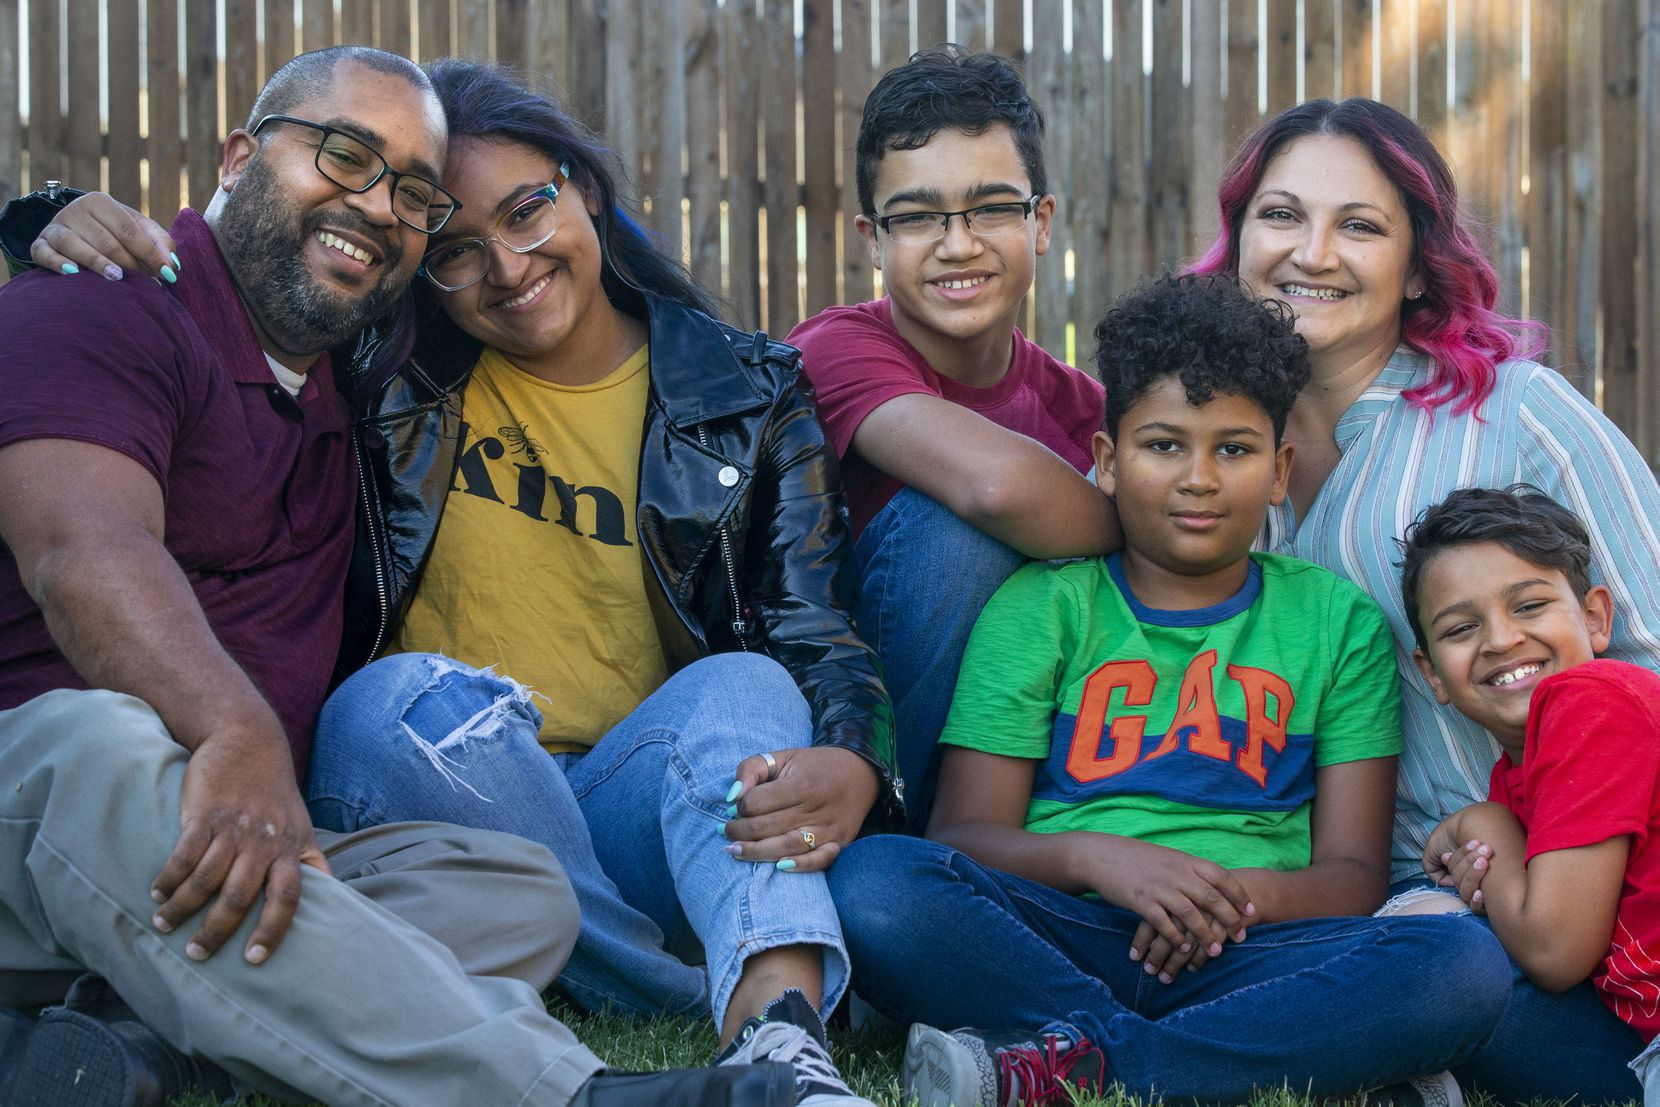 The London family — Joel (from left), Hannah, 16, Gabriel, 13, Luke, 10, Sara, and Elijah, 7 — posed for a portrait outside their home in Seagoville on June 16, 2020. Not pictured is Joel and Sara's oldest son, Christian, 17.